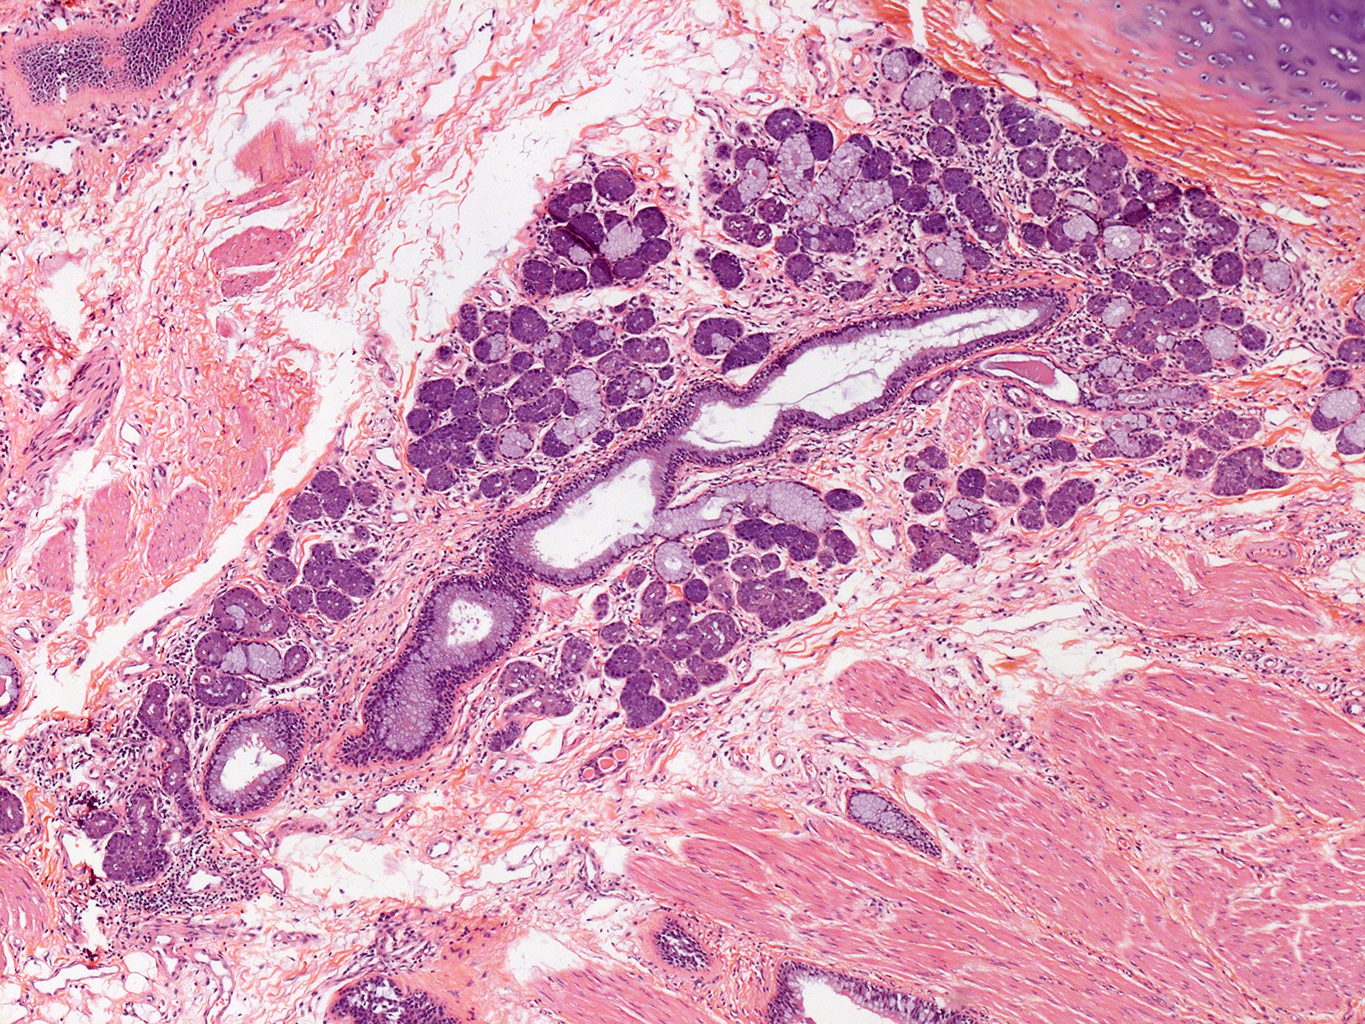 H&E Staining of 31 Year-Old Human Donor 10